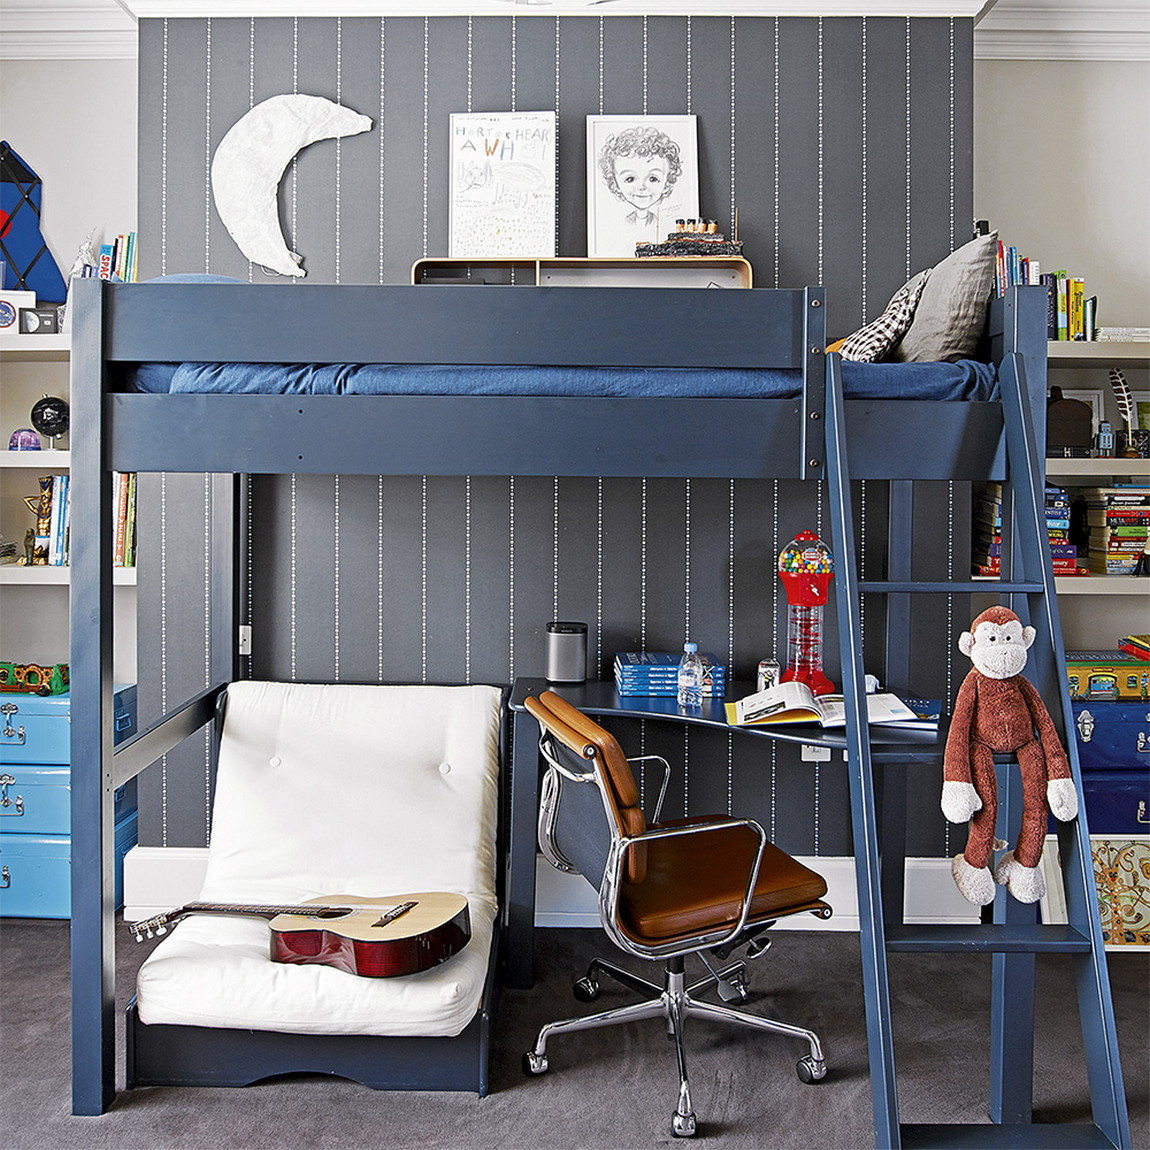 Small Bedroom Ideas For Teenage Boys With Bunk Beds Combined With Tables For Learning Architecturein